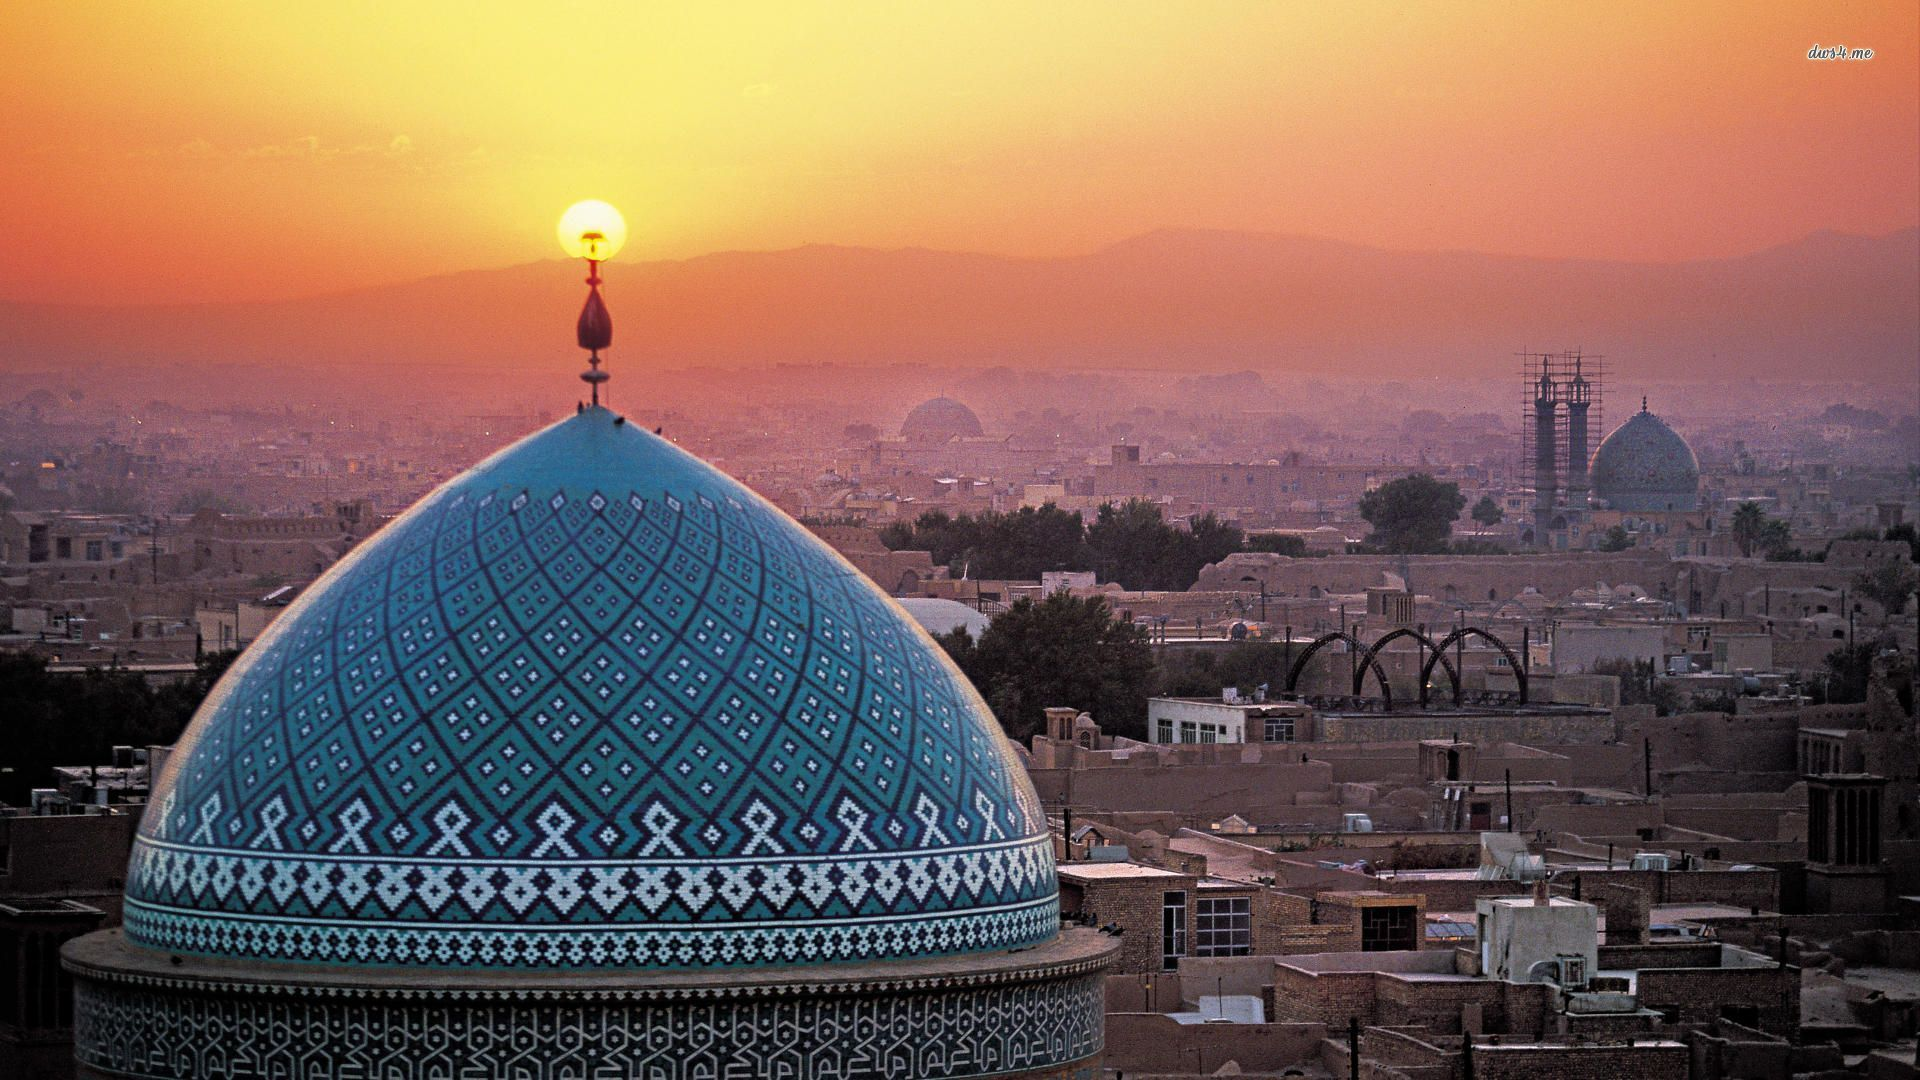 Jame mosque of Yazd, Iran wallpaper Iran tourism, Visit